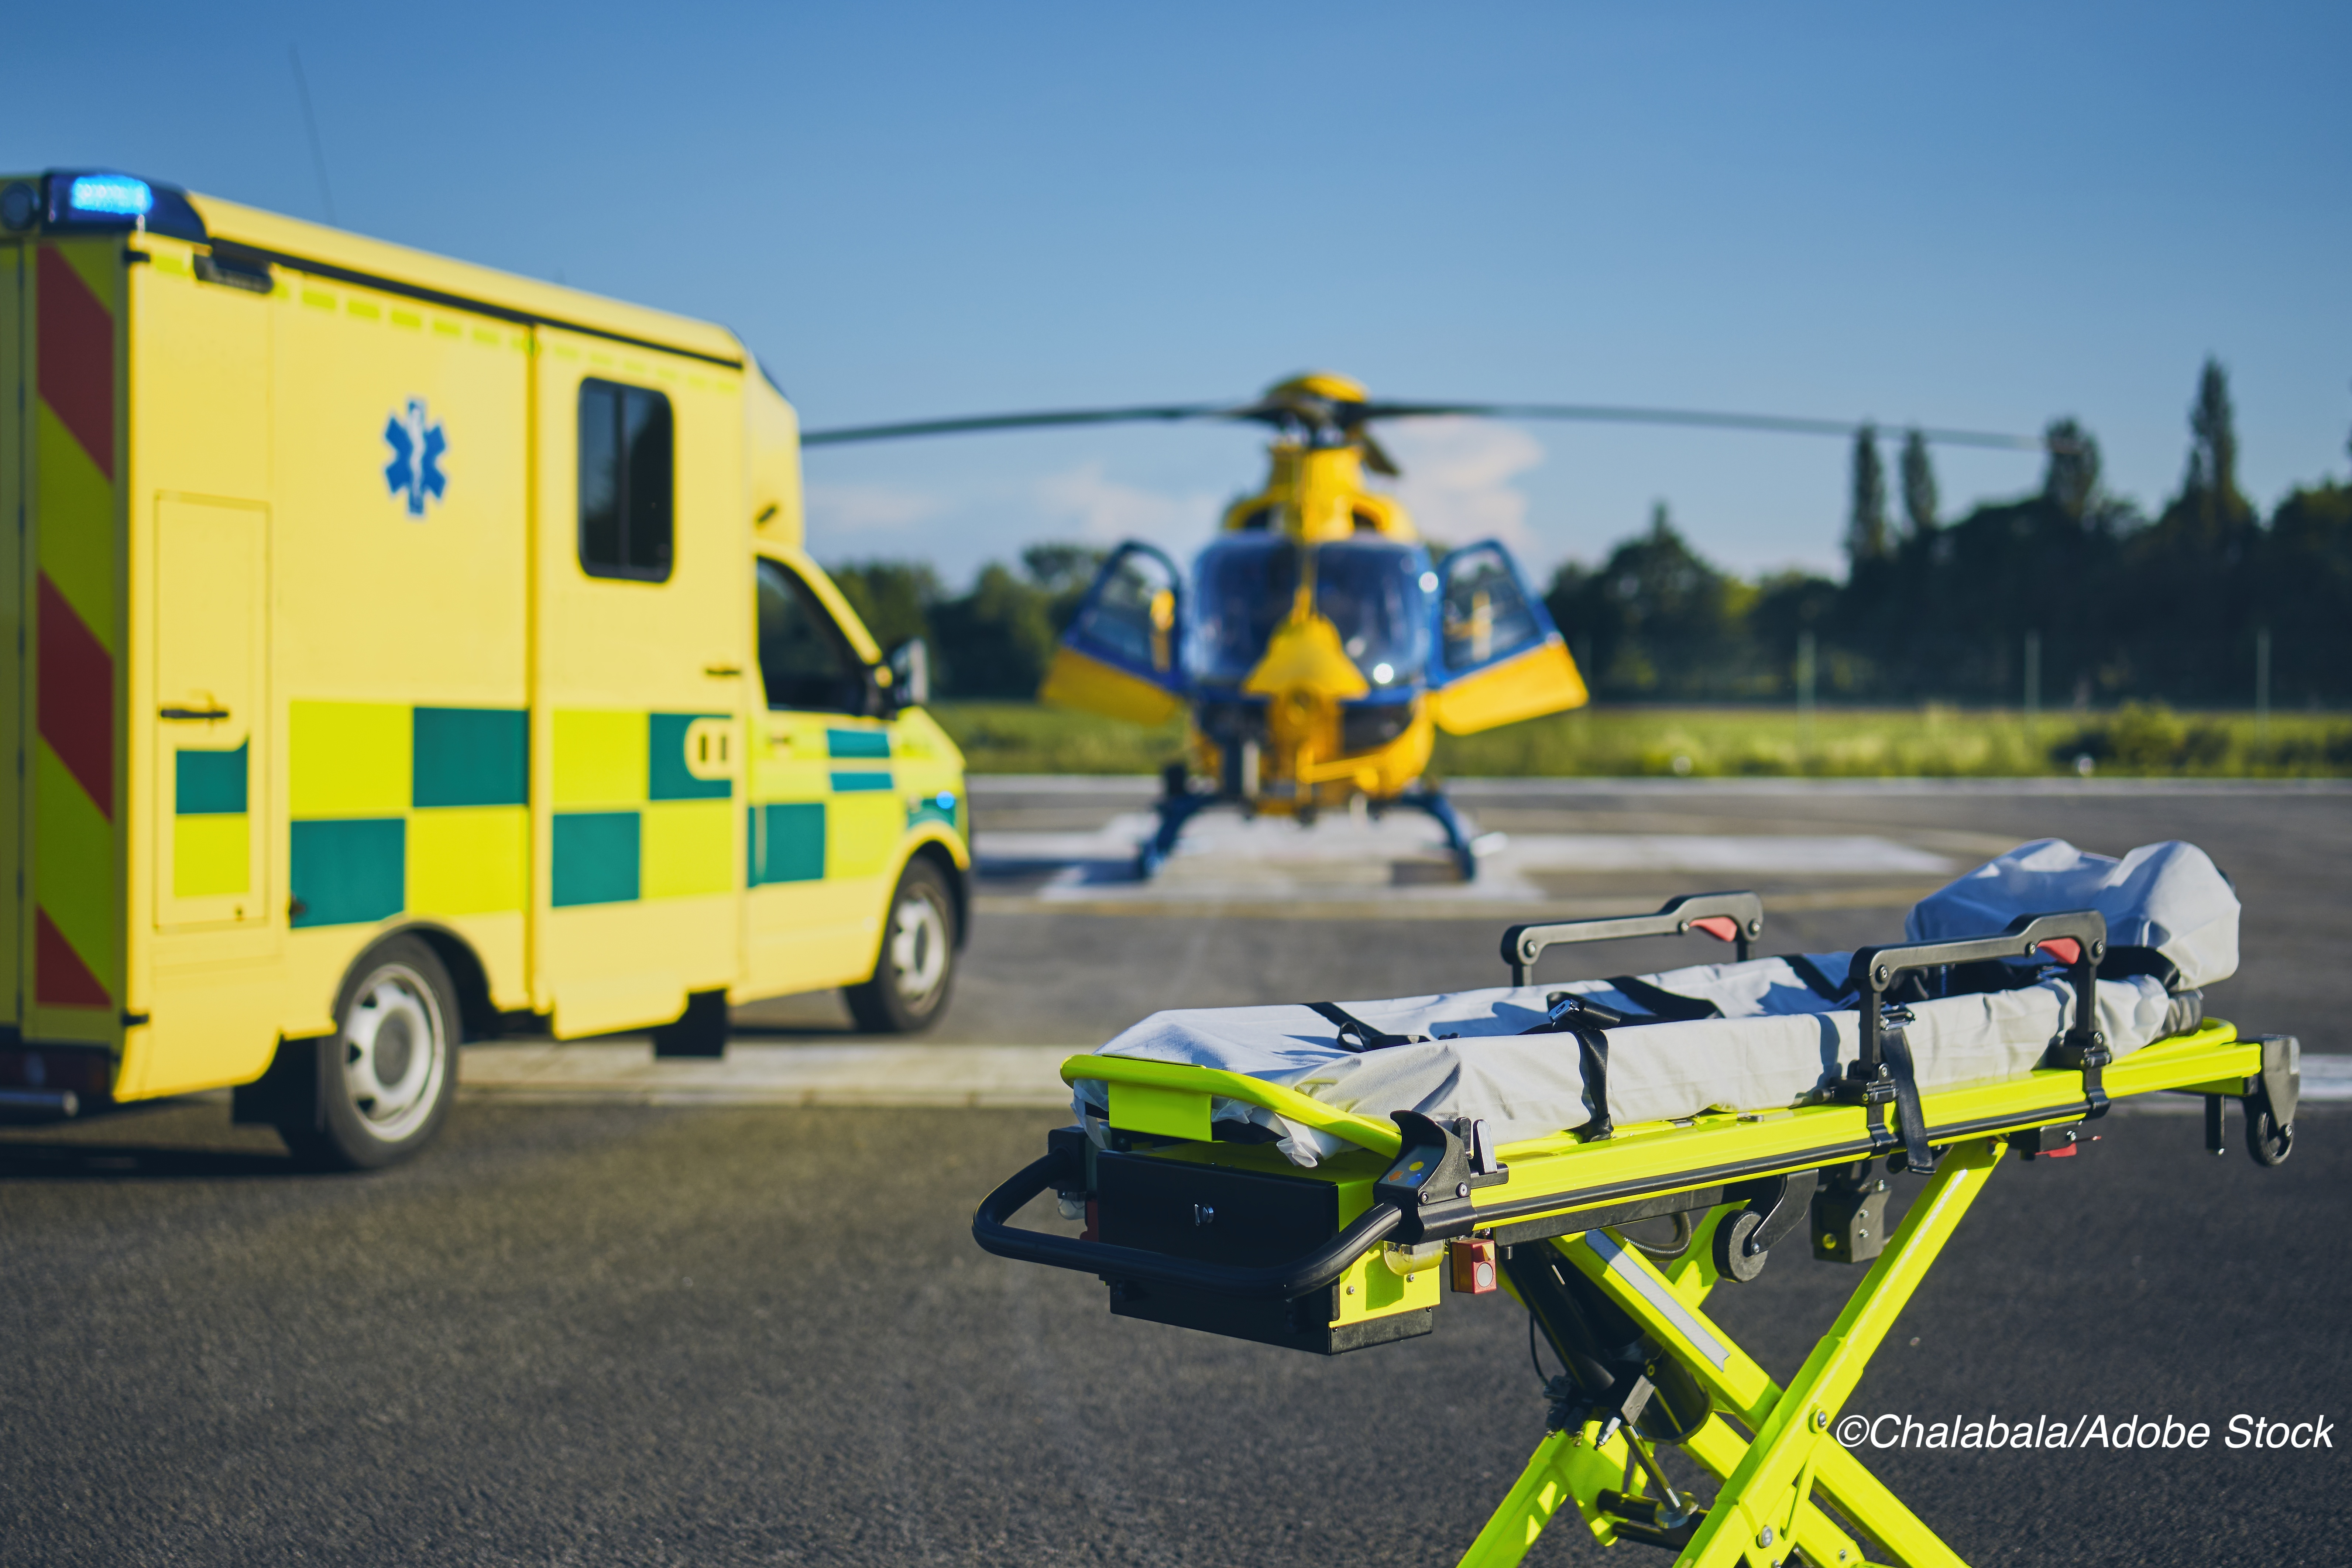 No One-Year Mortality Benefit for Helicopter vs Ground EMS